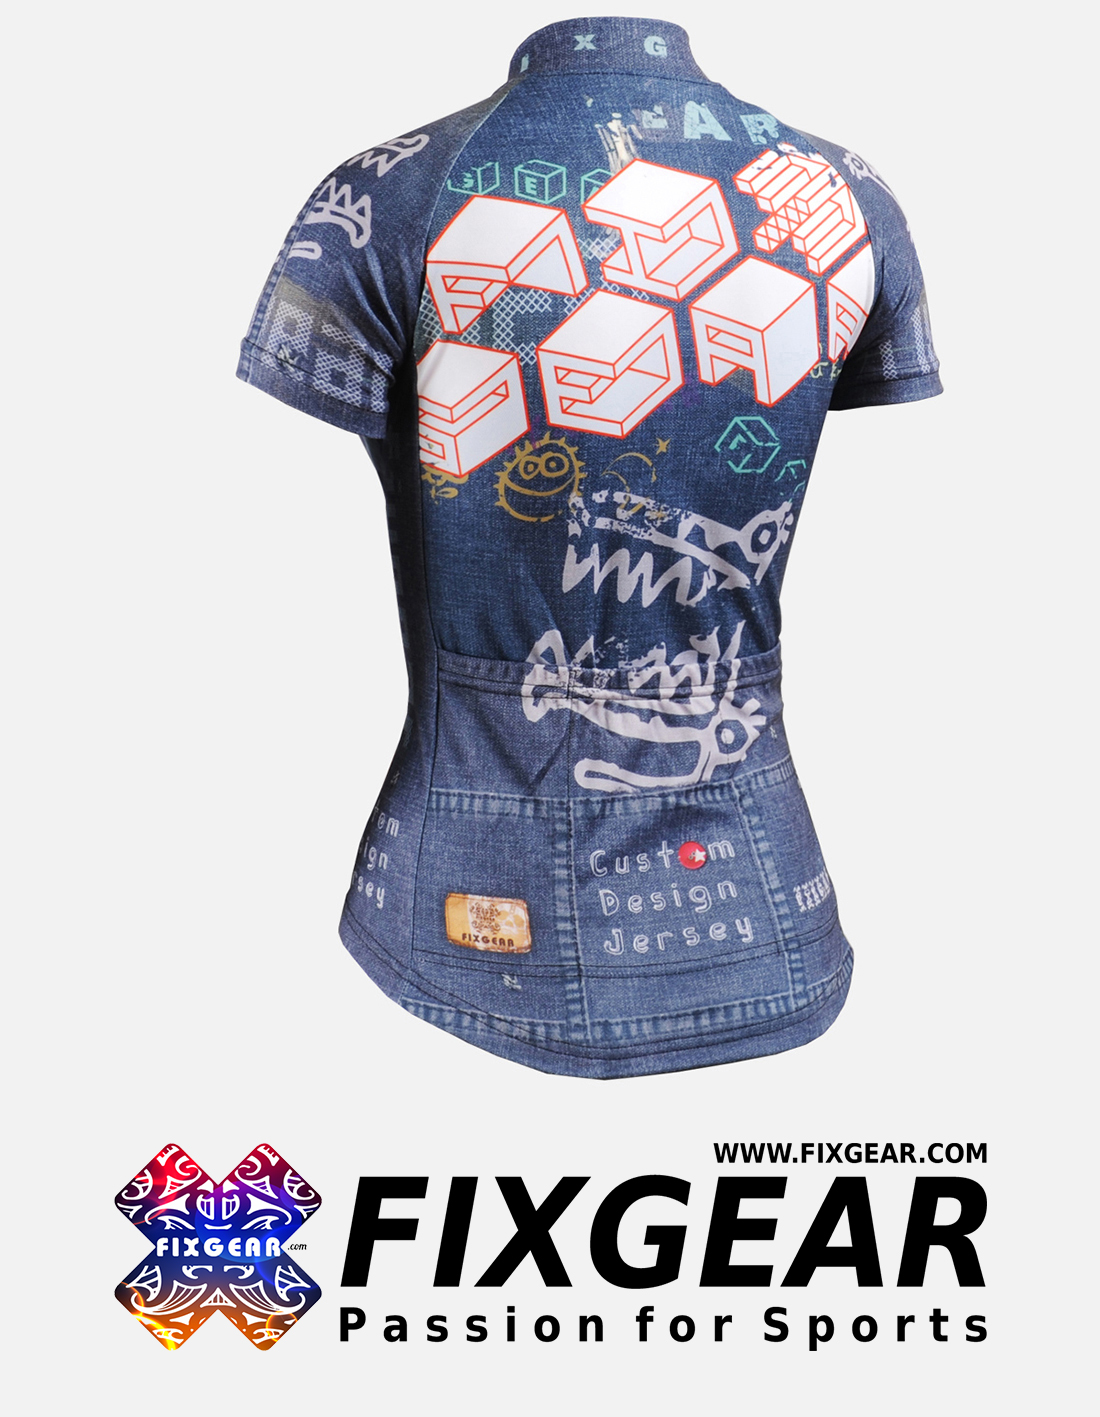 FIXGEAR CS-W1502 Women's Short Sleeve Jersey